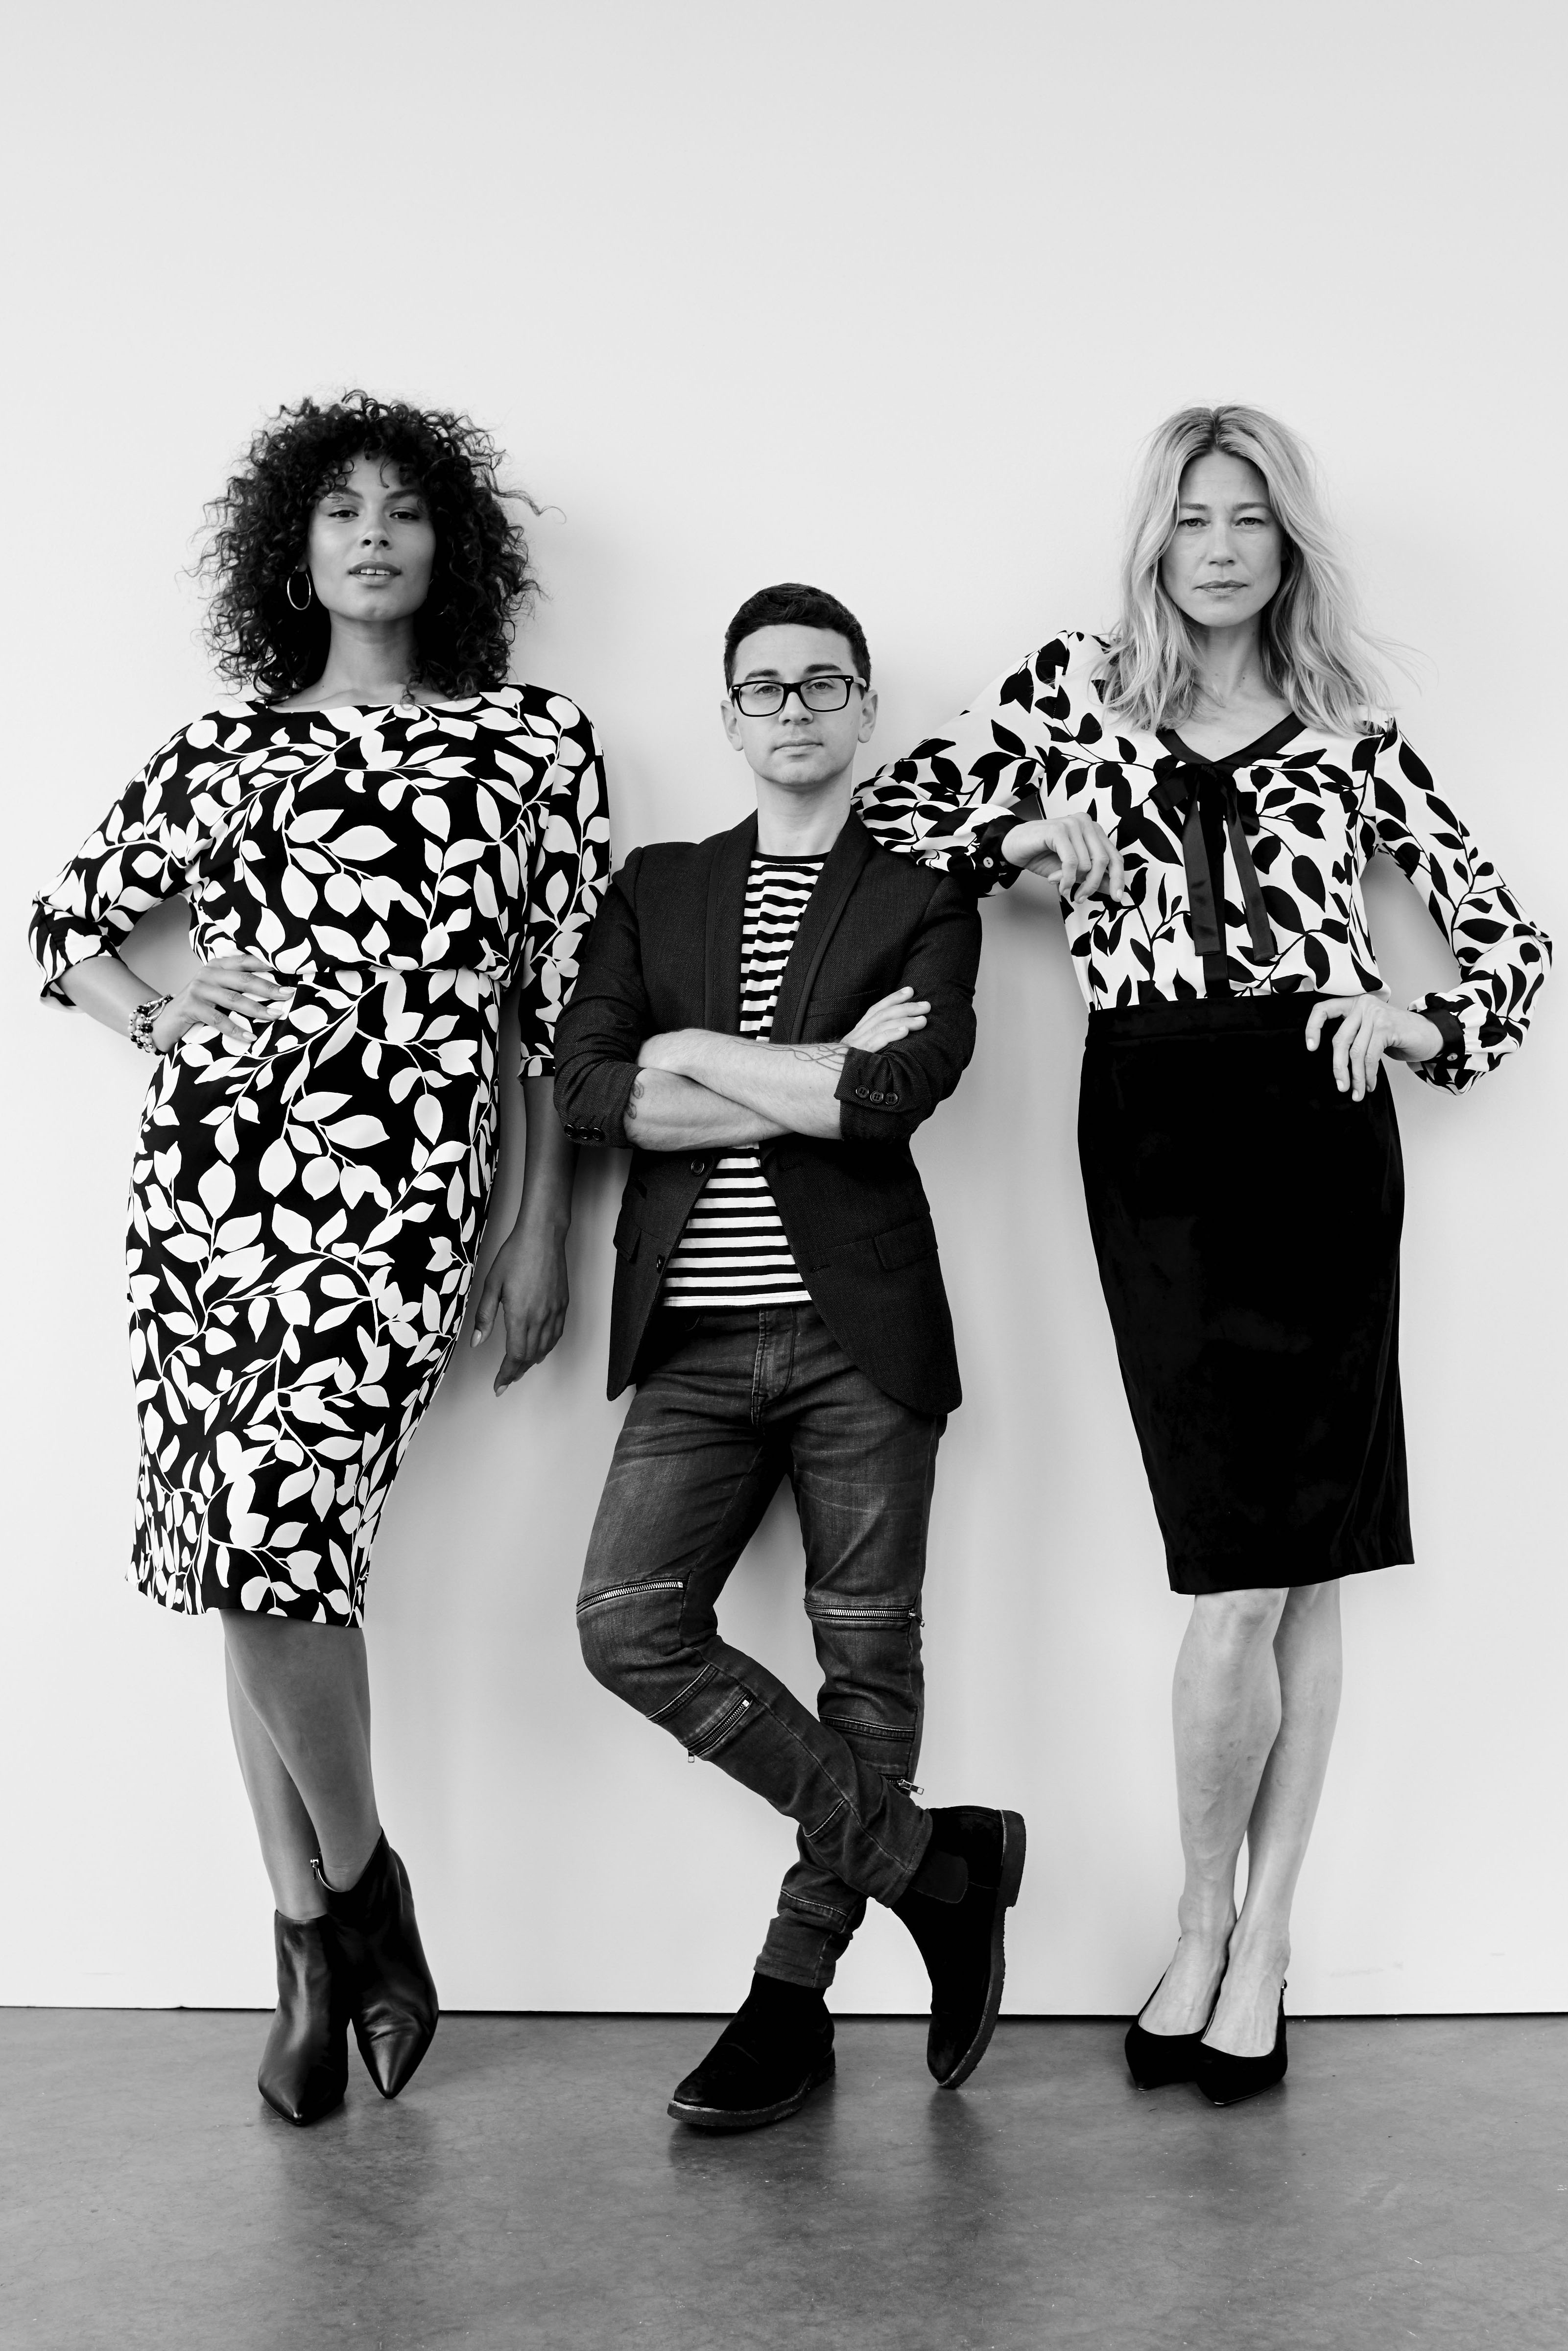 Christian Siriano with models in looks from his J. Jill line.